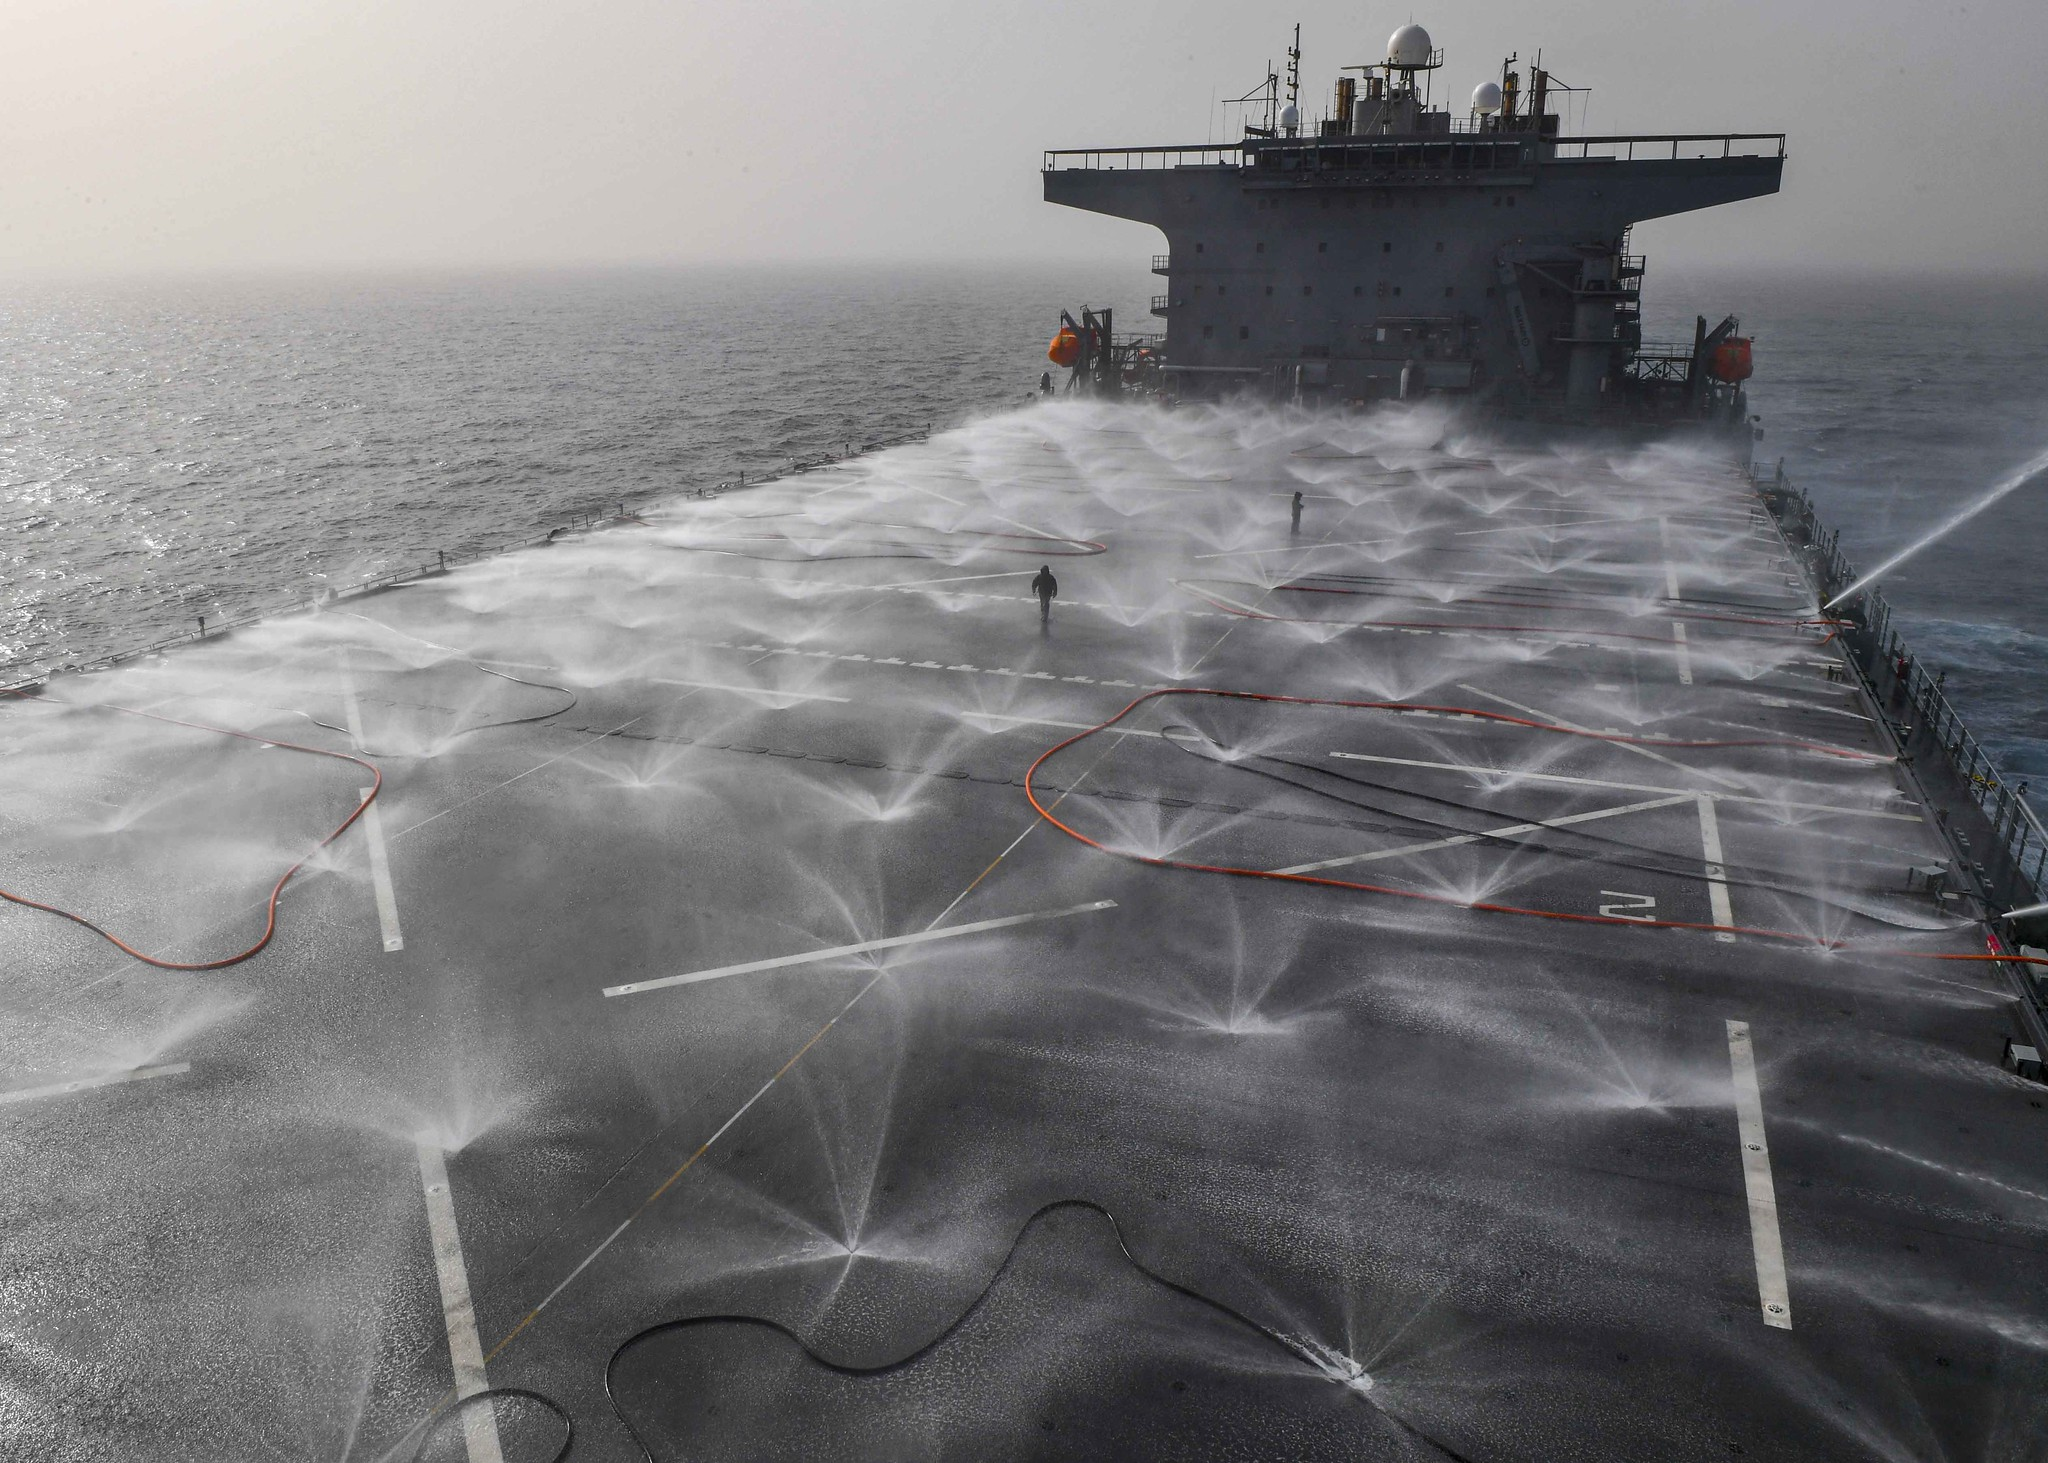 """Sailors from the air department check the functionality of the flight deck sprinkler system on board the expeditionary sea base USS Hershel """"Woody"""" Williams (ESB 4) in the Atlantic Ocean, March 13, 2021. (MC2 Eric Coffer/Navy)"""